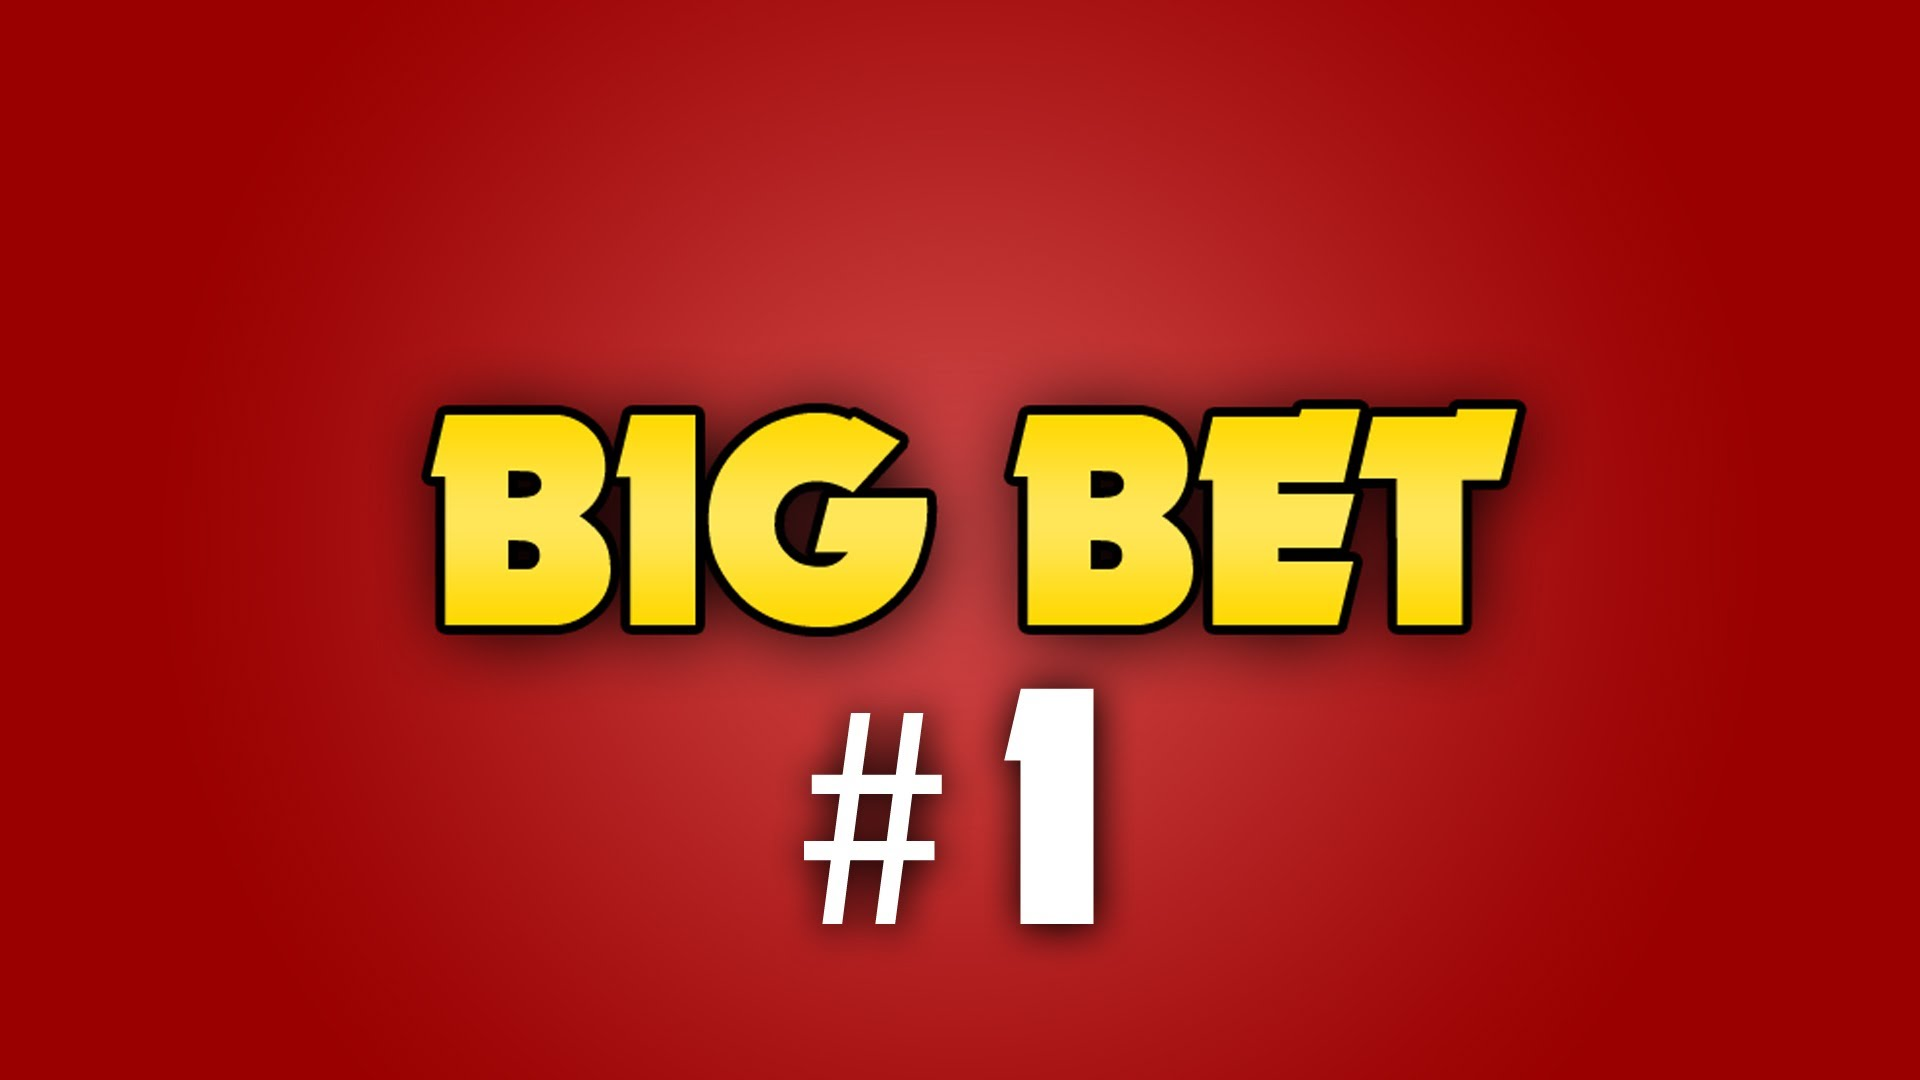 Improve your Chances with Better Betting Choices - Online Betting Tips!